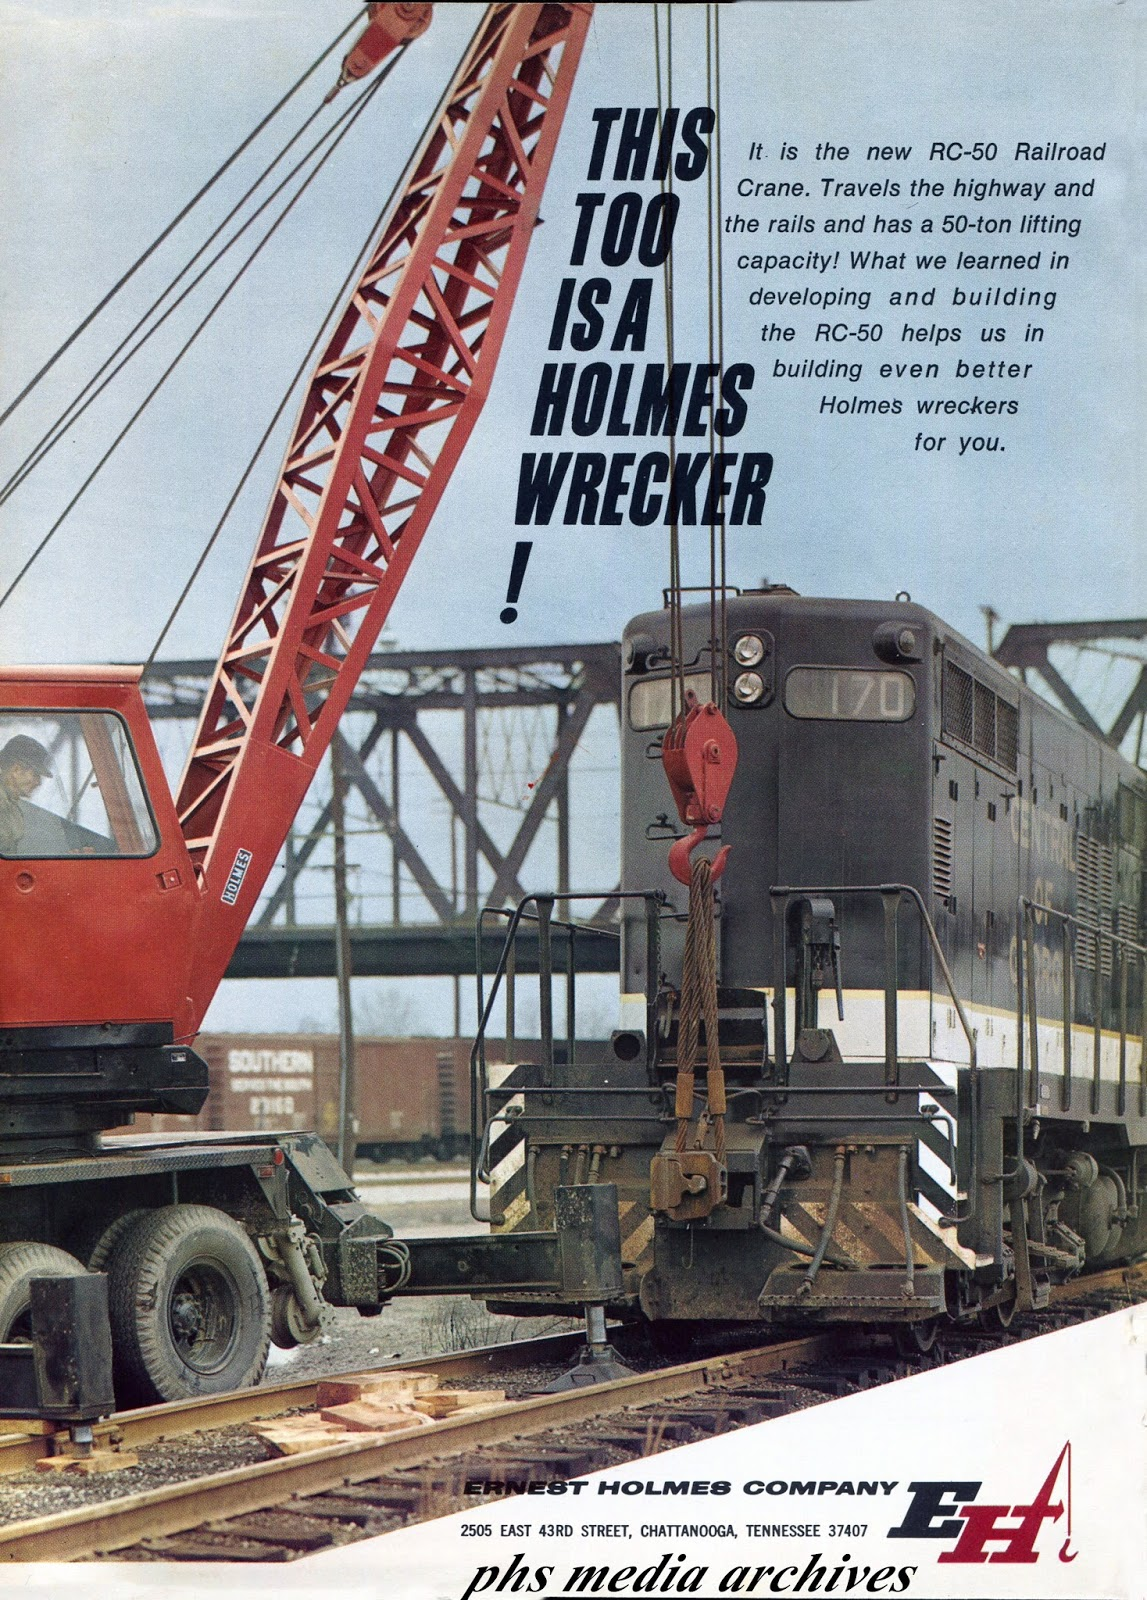 The holmes rc 50 railroad crane is what you need to get that derailed allison locomotive back on track